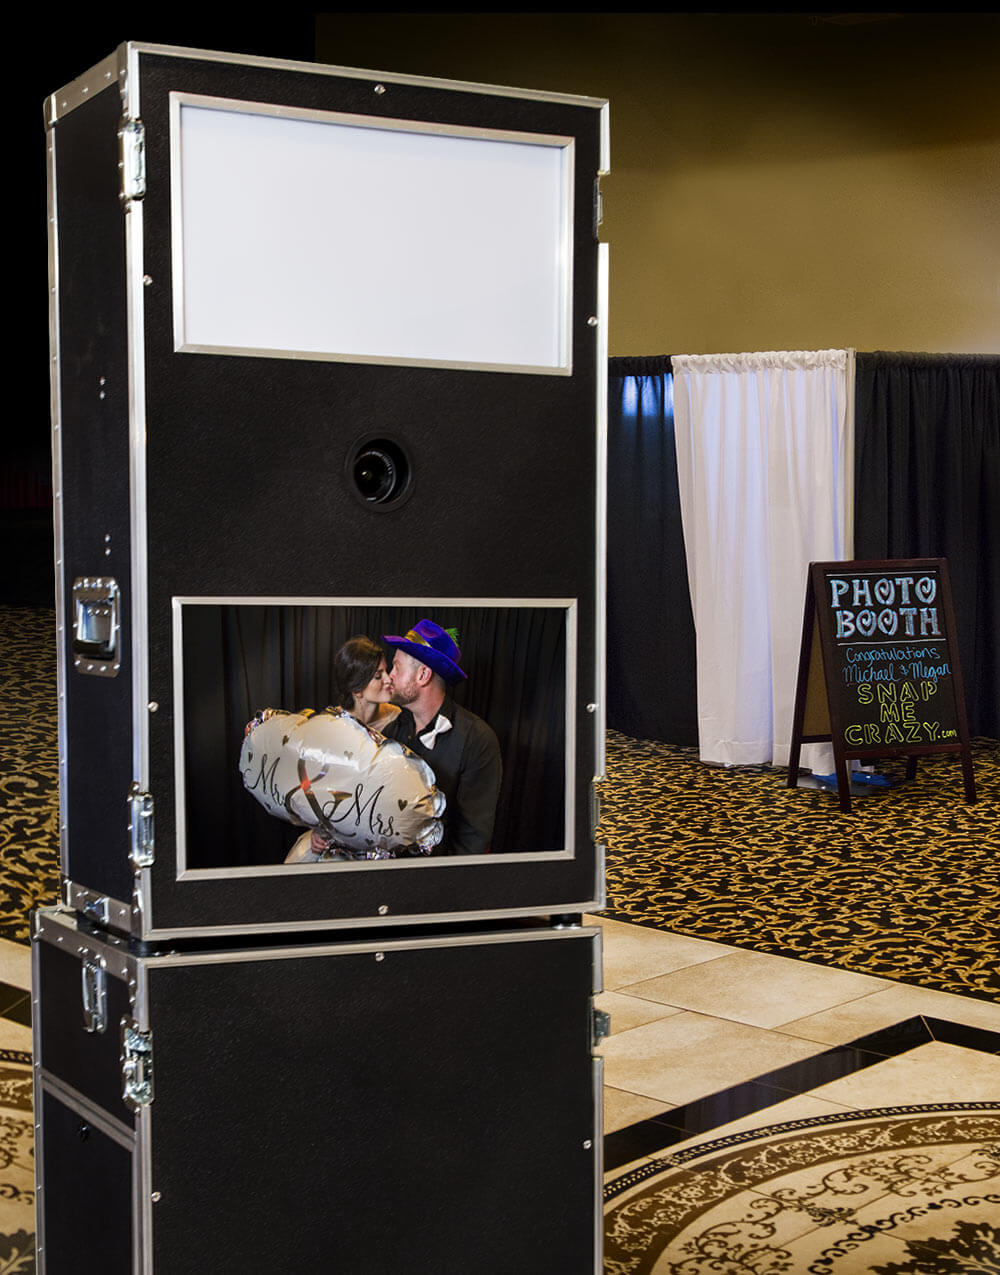 photo booth at wedding reception oin Oklahoma City, Oklahoma